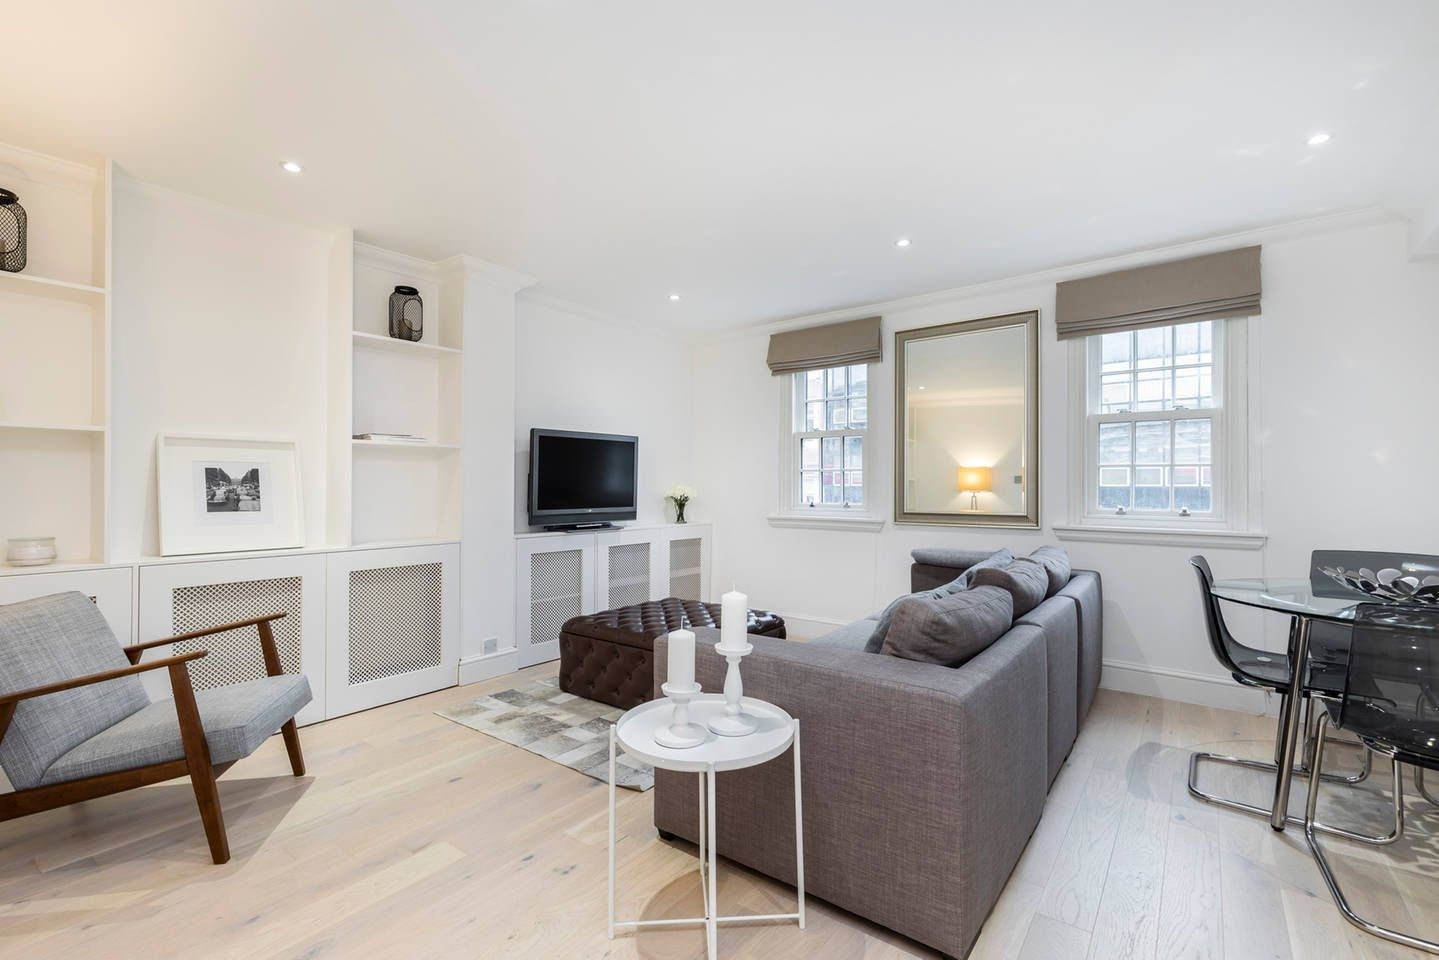 Contemporary And Elegantly Designed 2 Bed Right In The Heart Of Central London In The Famous Waterloo Area Ideal For 4 Rent In London Flat Rent Home